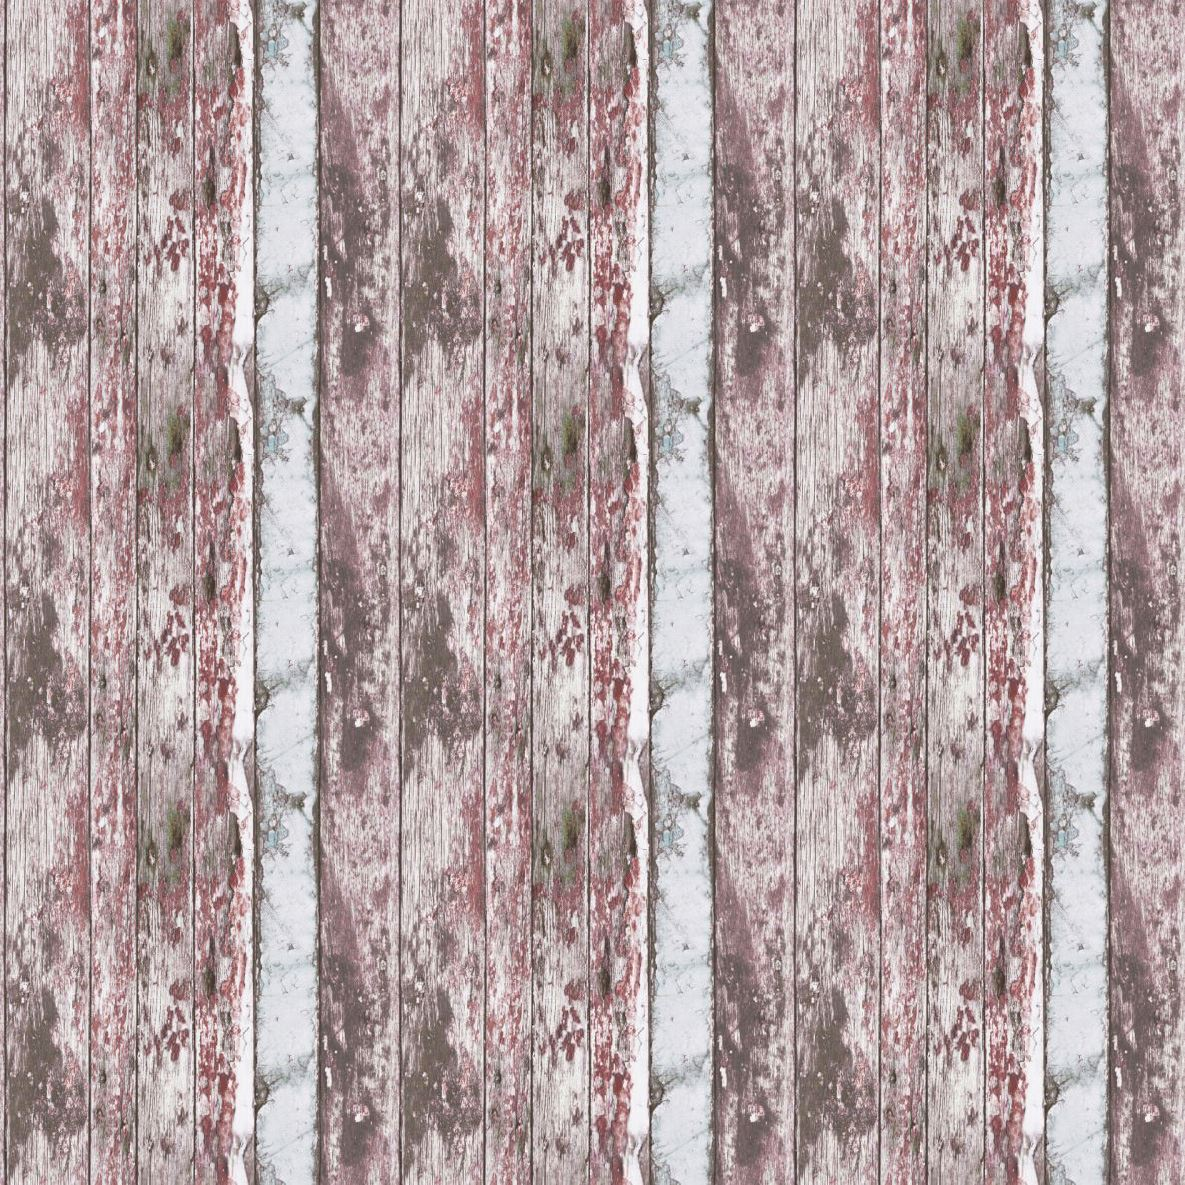 Painted-Rustic-Wood-Wallpaper-Distressed-Red-White-Textured-Vinyl-3-x-Rolls thumbnail 2